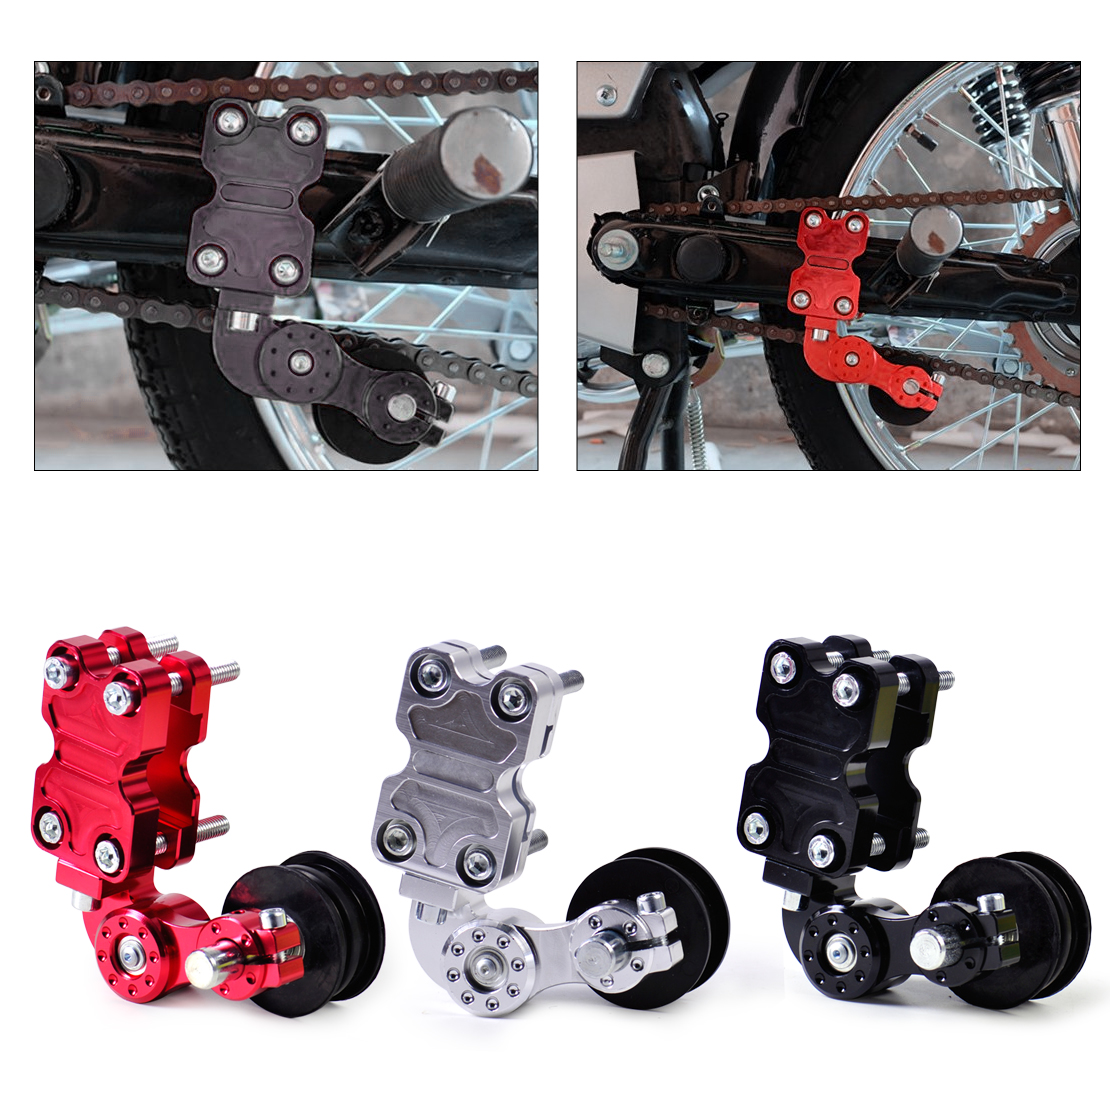 DWCX Motorcycle Adjustable Chain Tensioner Bolt on Roller Motocross for Harley Honda Dirt Street Bike ATV Banshee Suzuki Chopper universal motorcycle chain tensioner bolt on roller chopper atv dirt street bike for kawasaki er 6f er 6n ninja 650r 400r 300